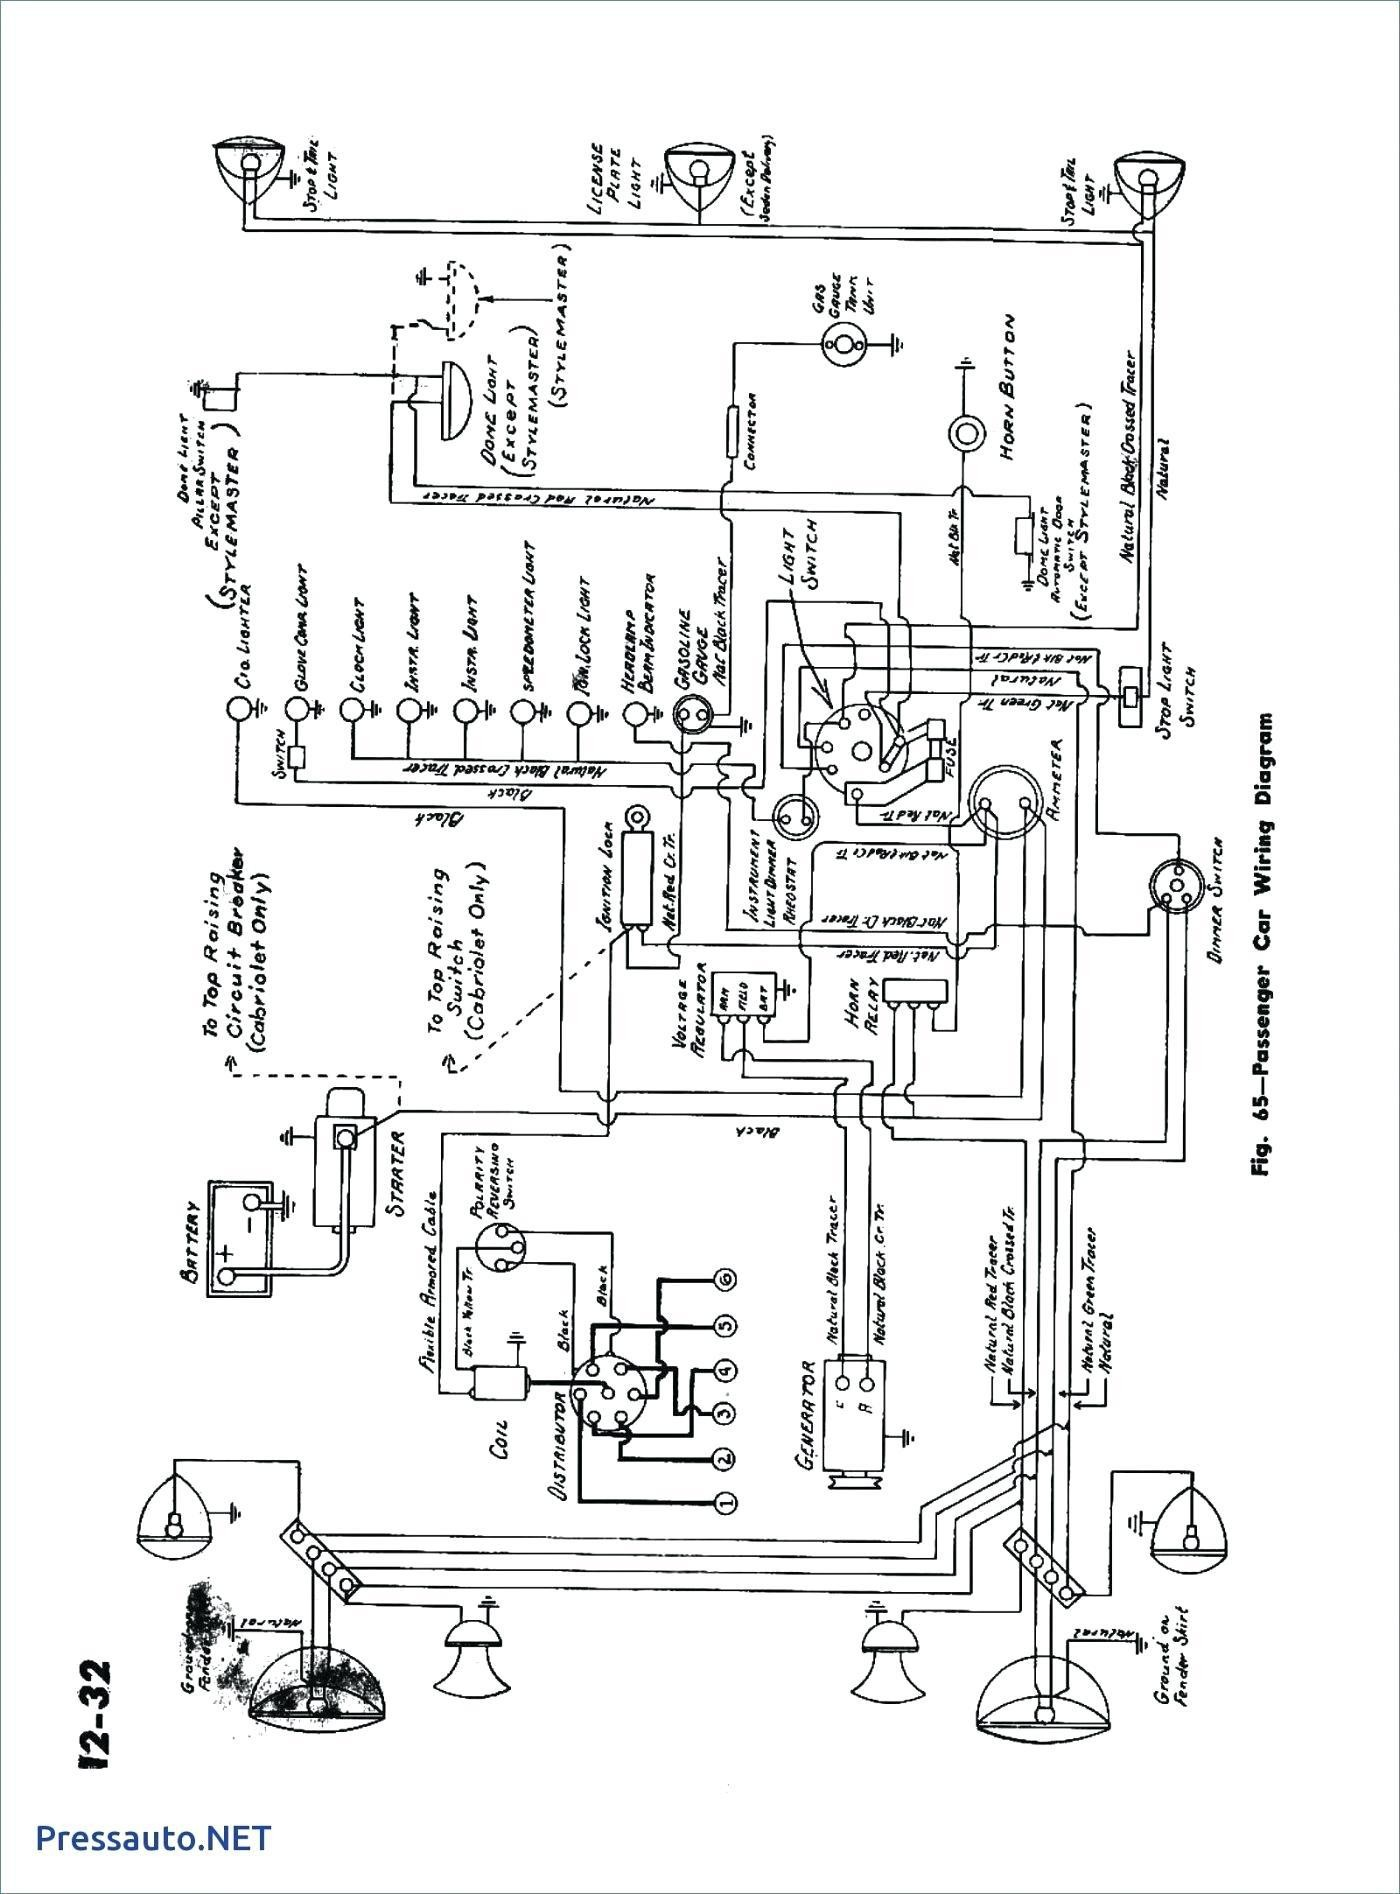 Ac Wiring Diagrams Automotive Library Aircraft Electrical Diagram Symbols